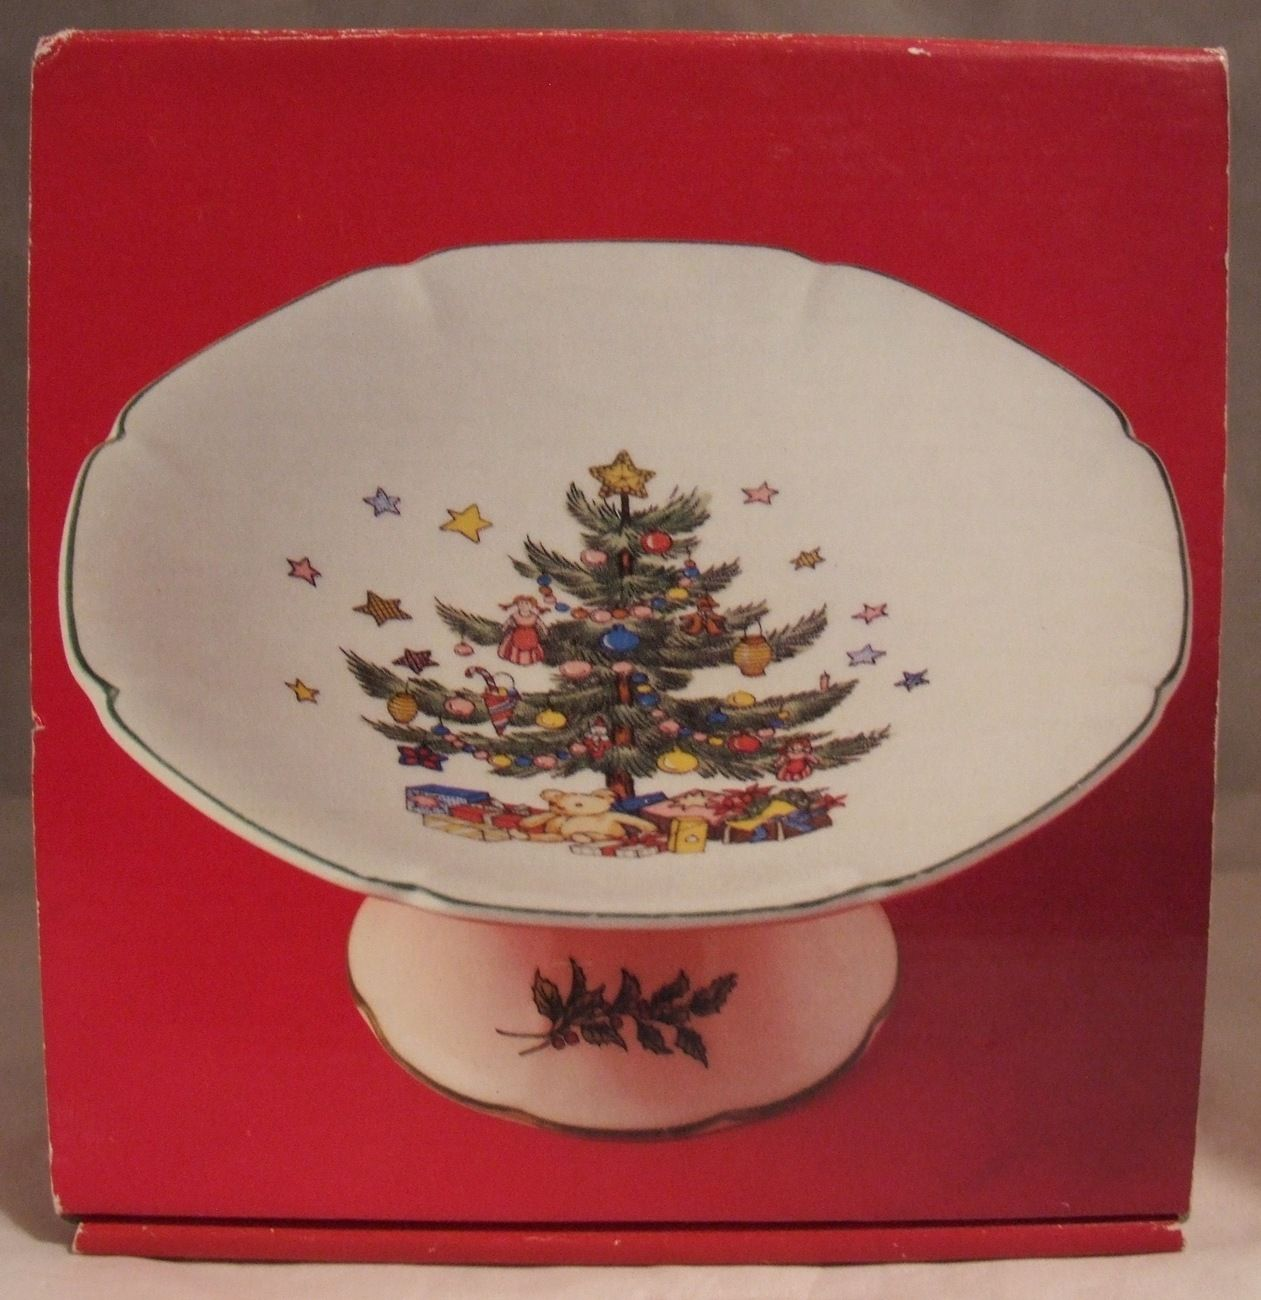 Nikko Japan Compote Dish 6 Inch Christmastime Happy Holiday ...